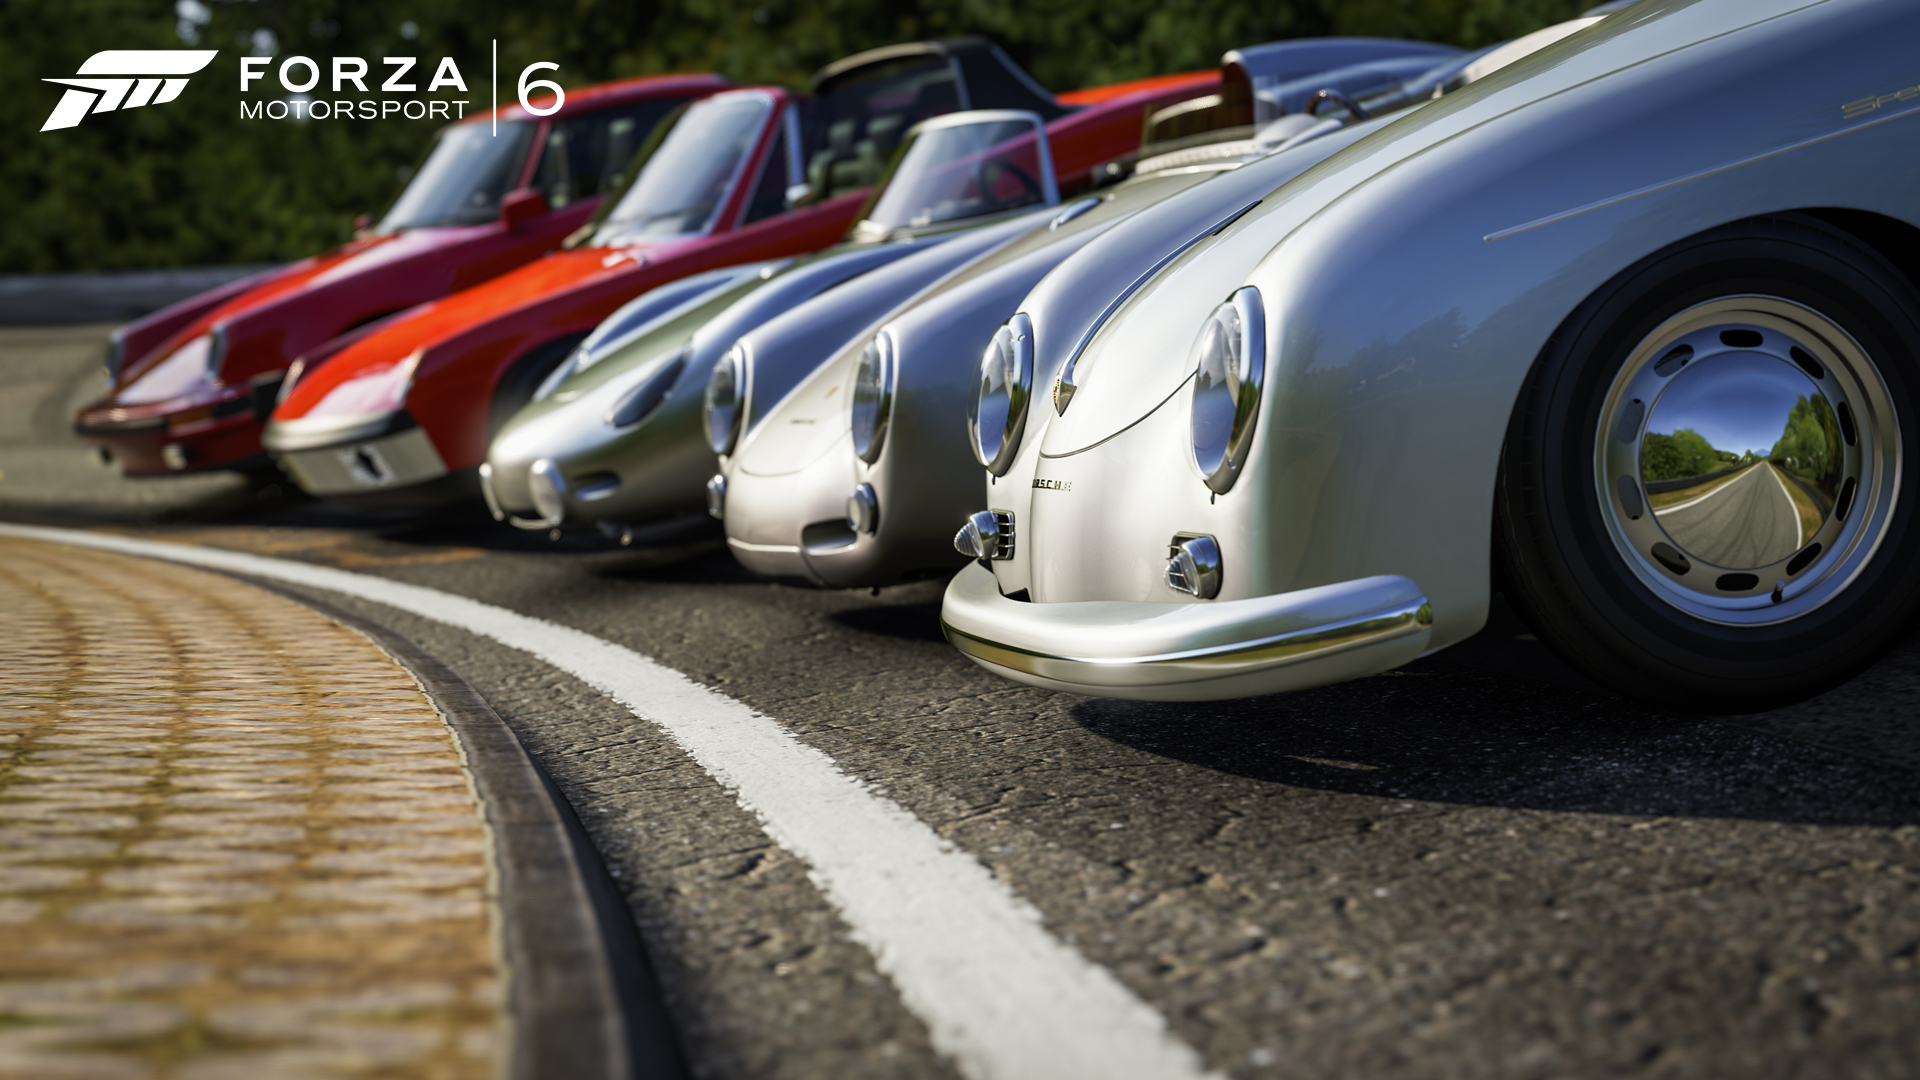 Video For Race Legendary Rides with the Porsche Expansion for Forza Motorsport 6